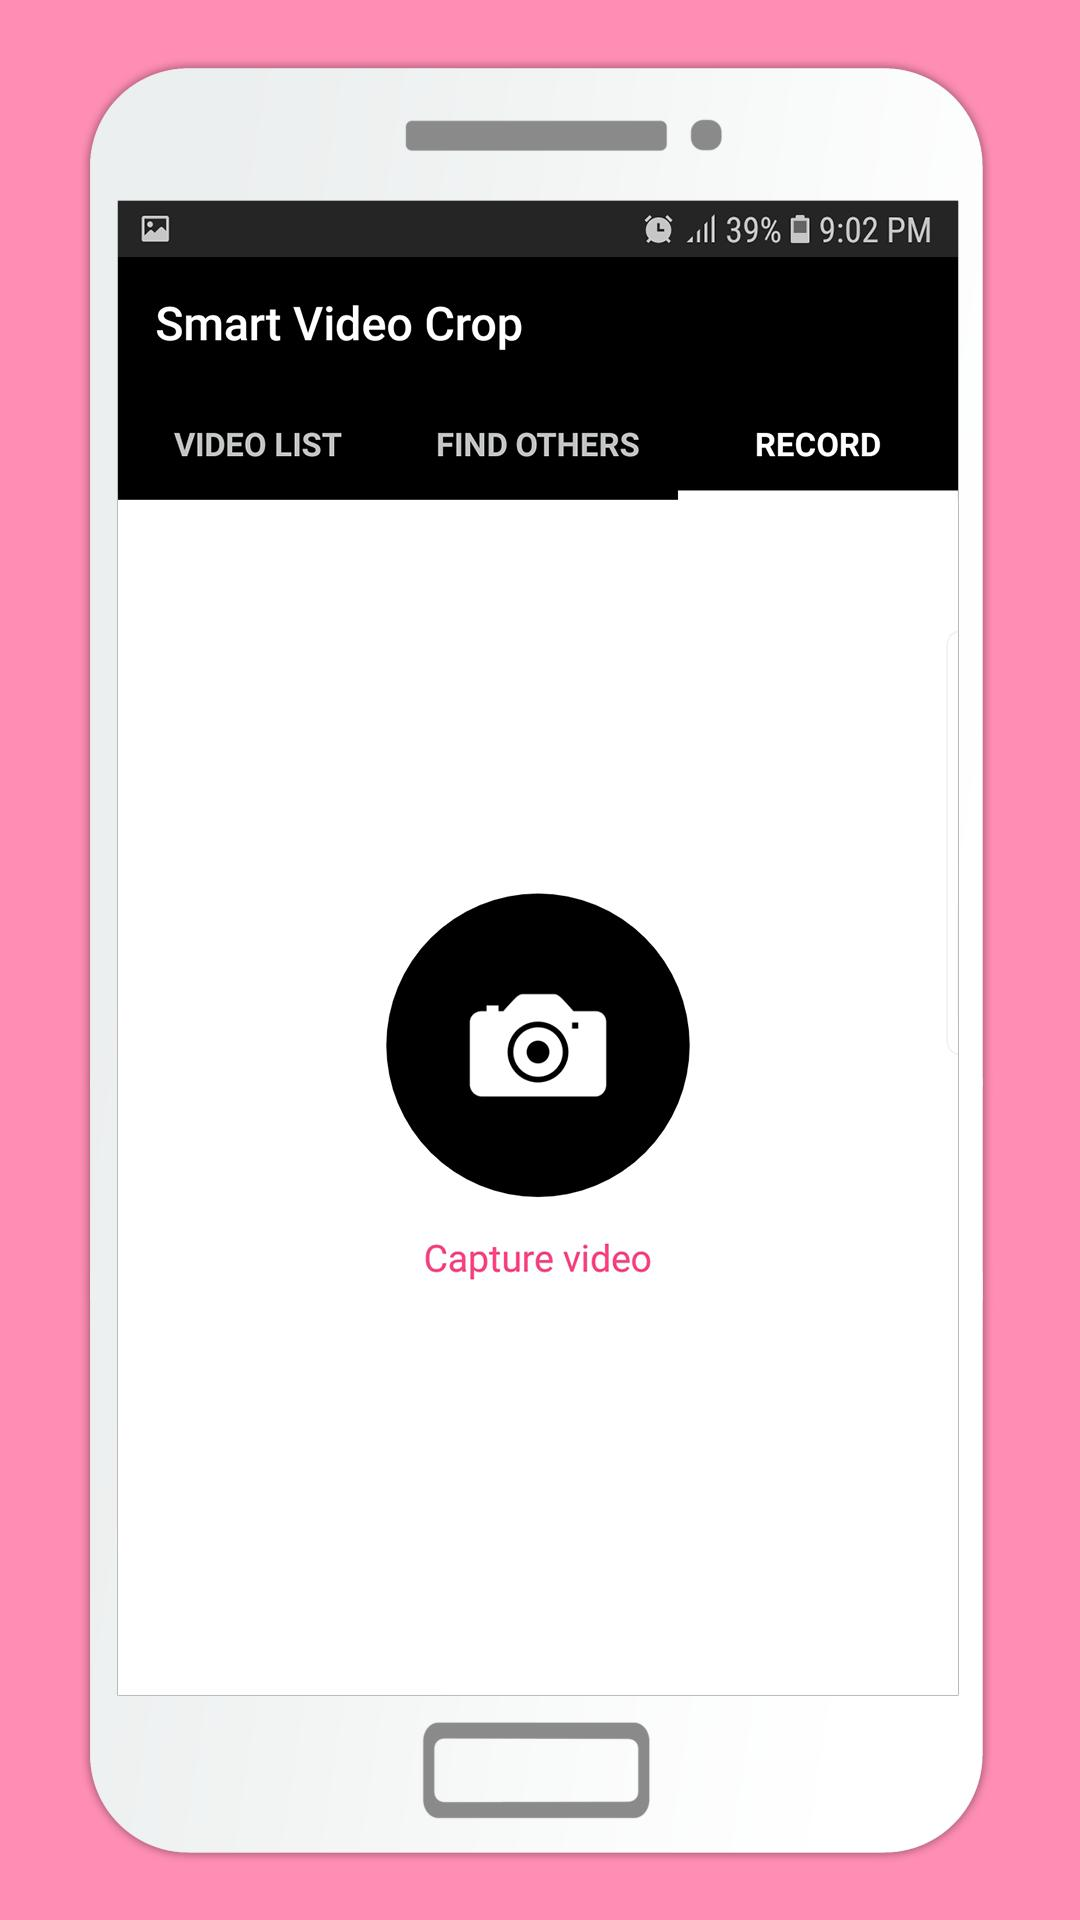 Smart Video Crop for Android - APK Download